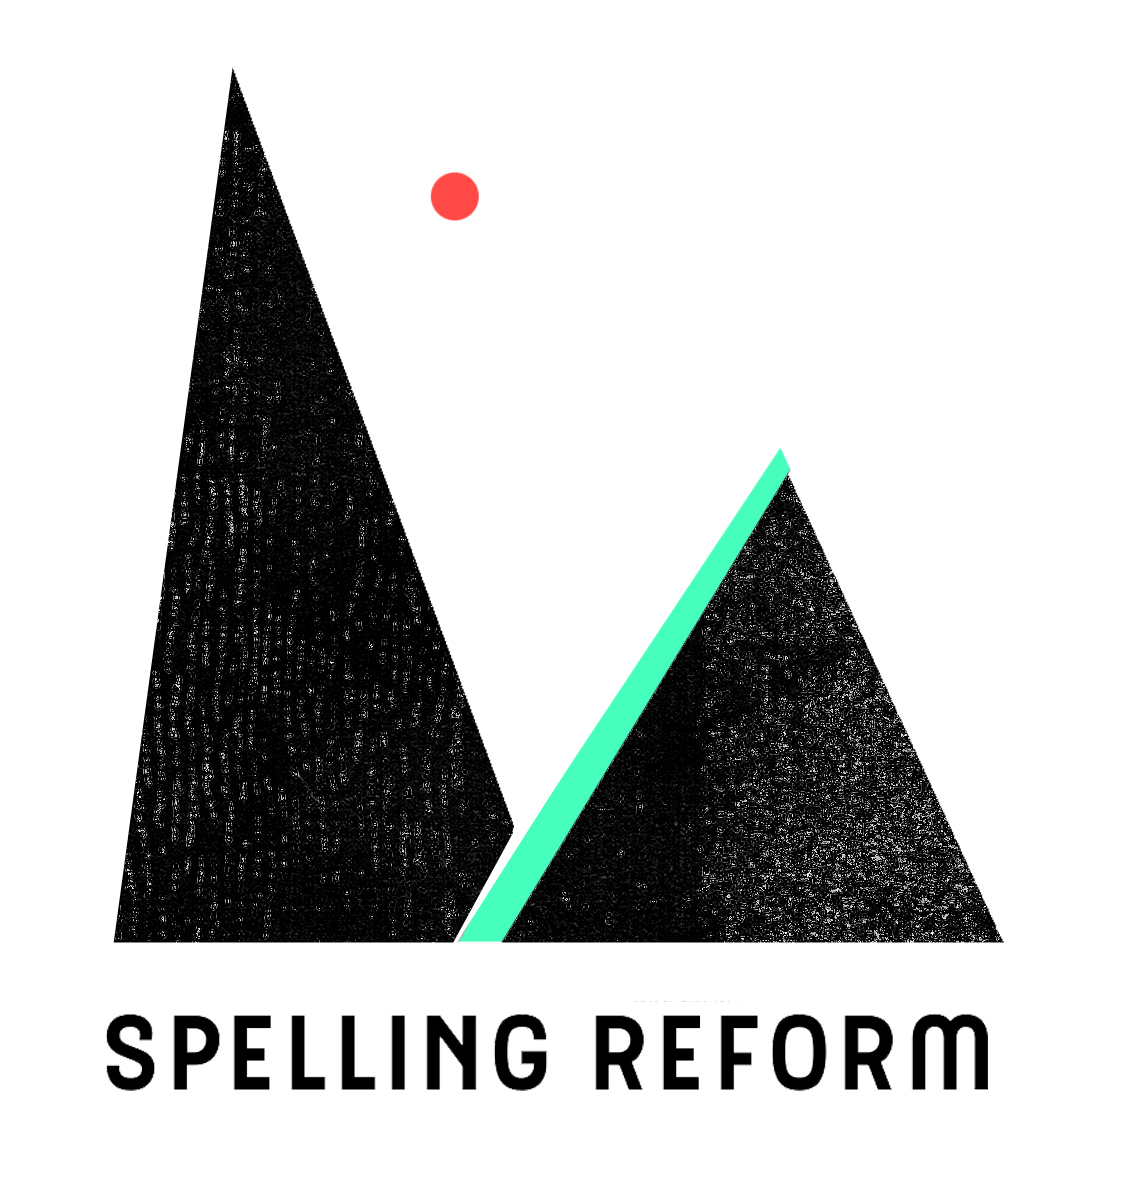 spellingreform_final.jpg